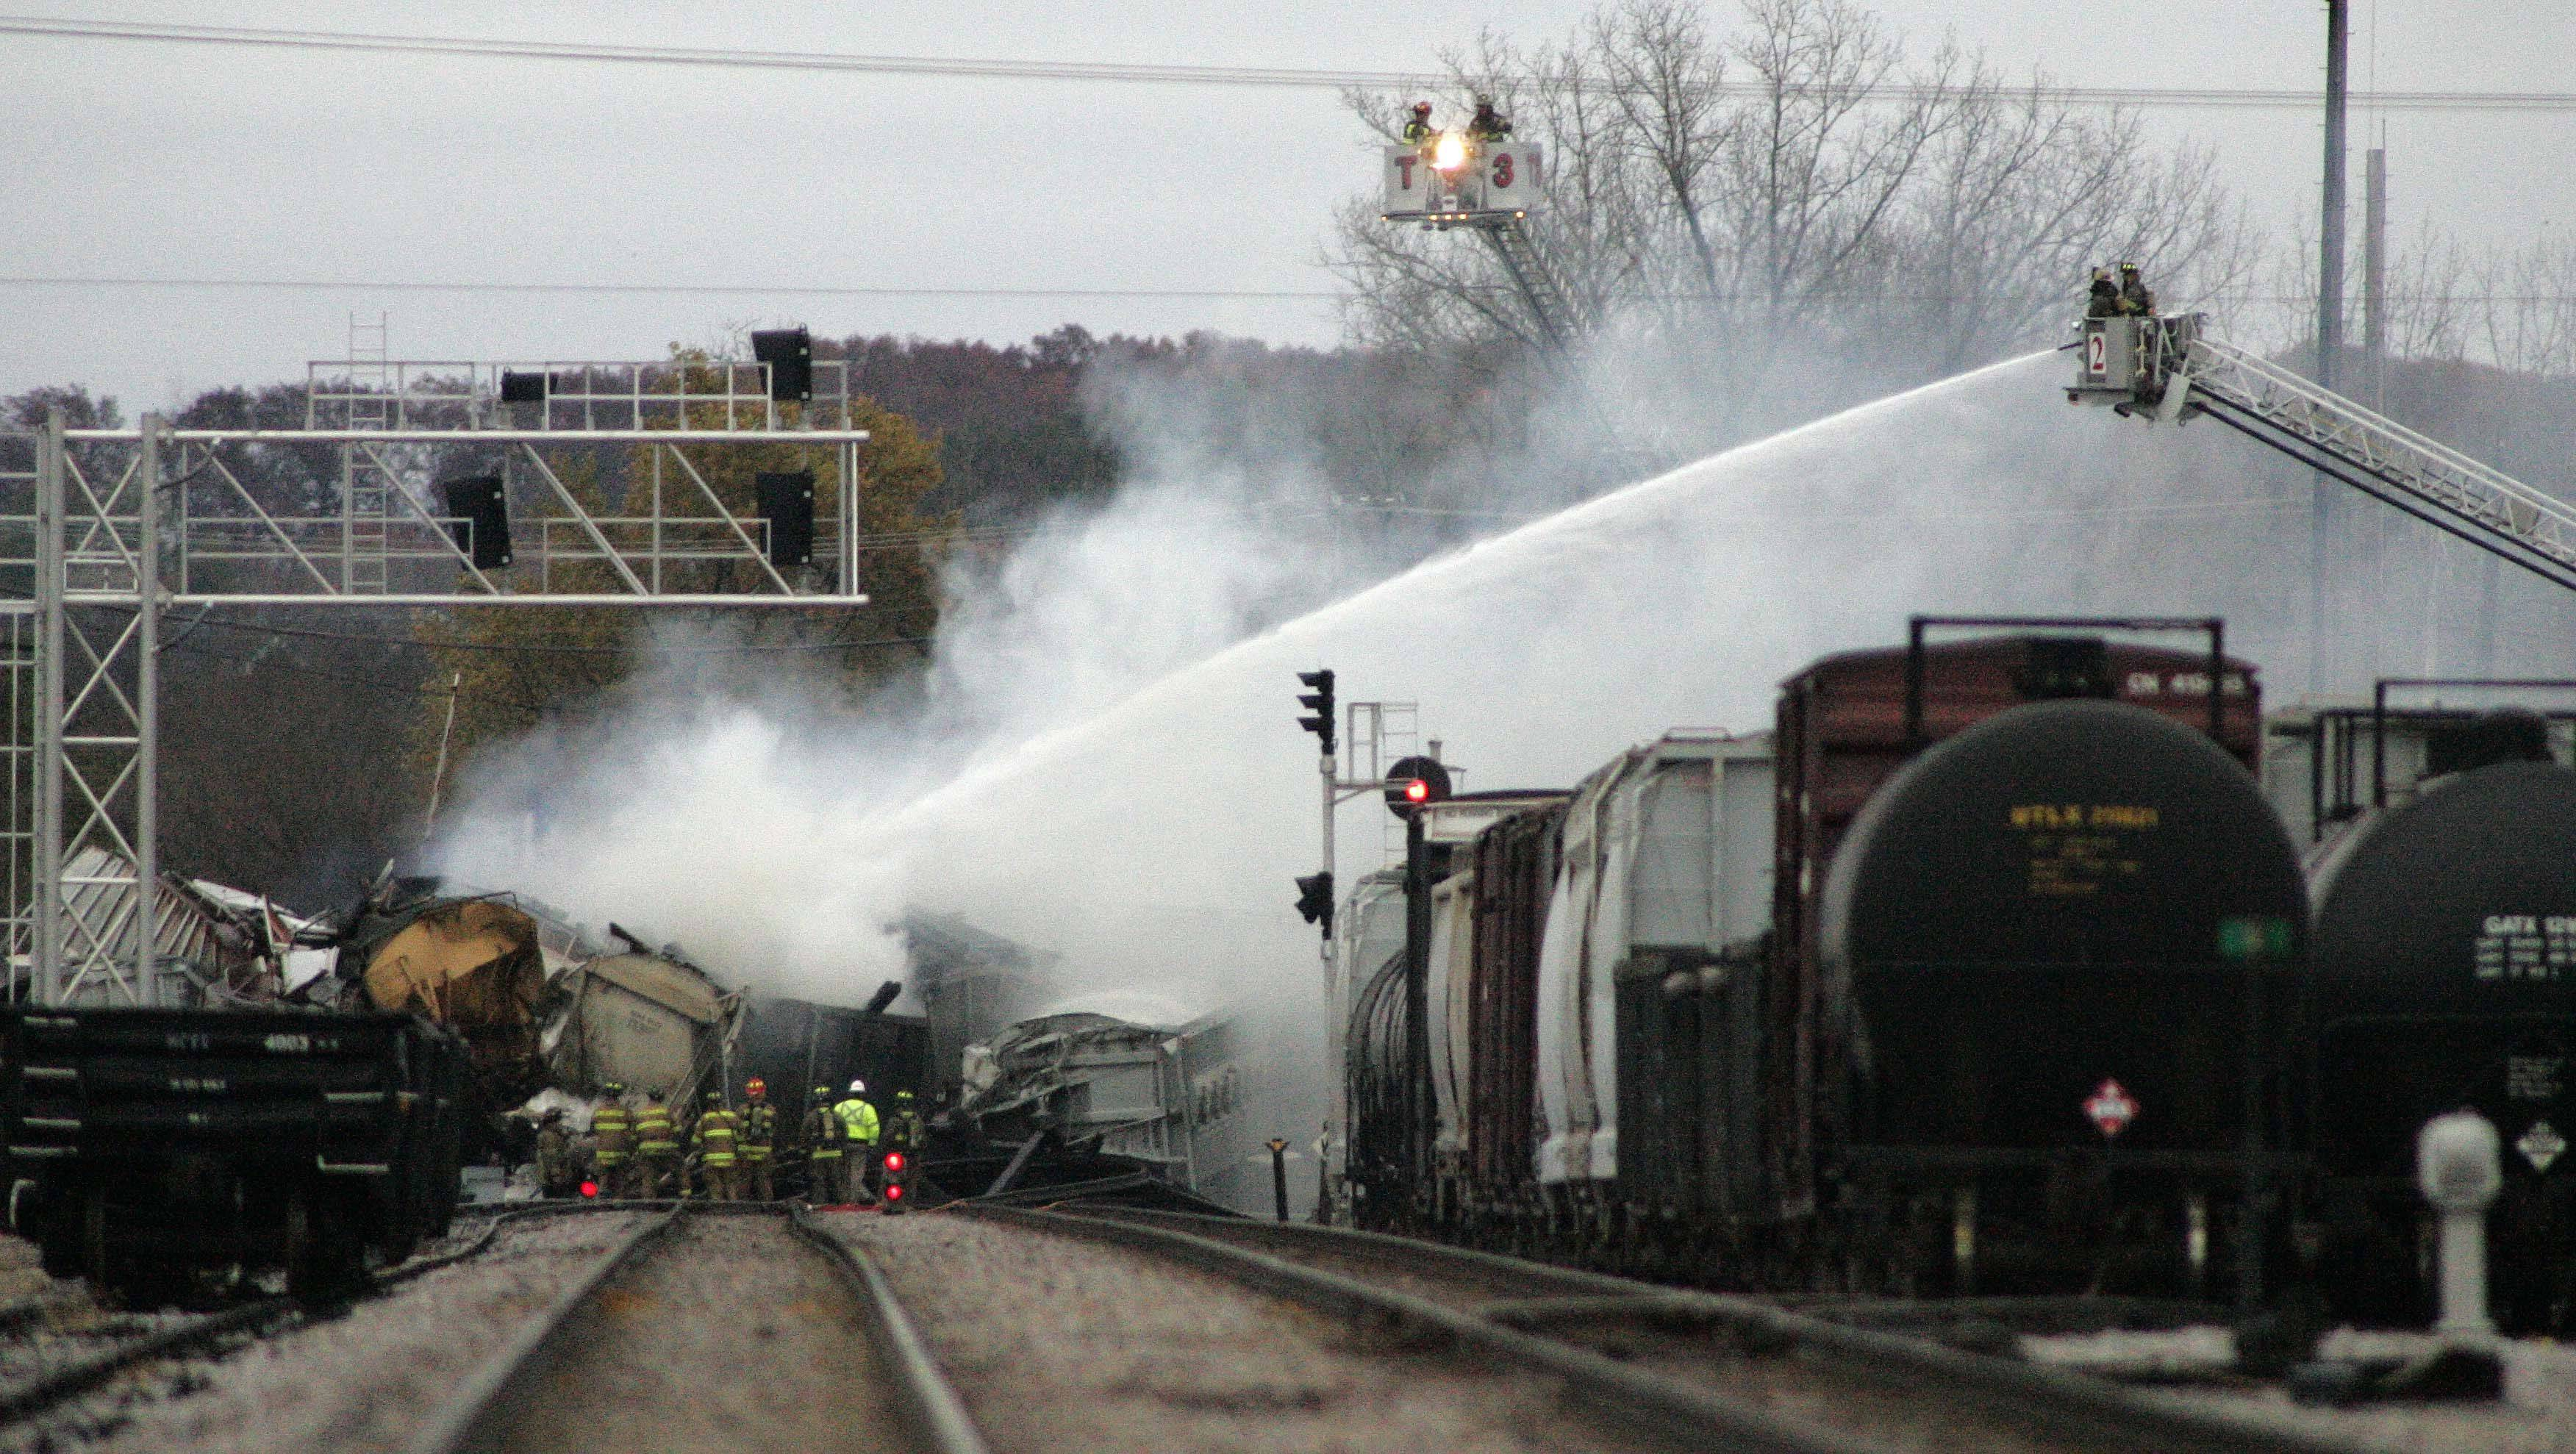 Smoke rises from a three-car train derailment near the Elgin-Bartlett border Thursday morning. Two of the cars that derailed contained hazardous materials, though officials say no chemicals were released.